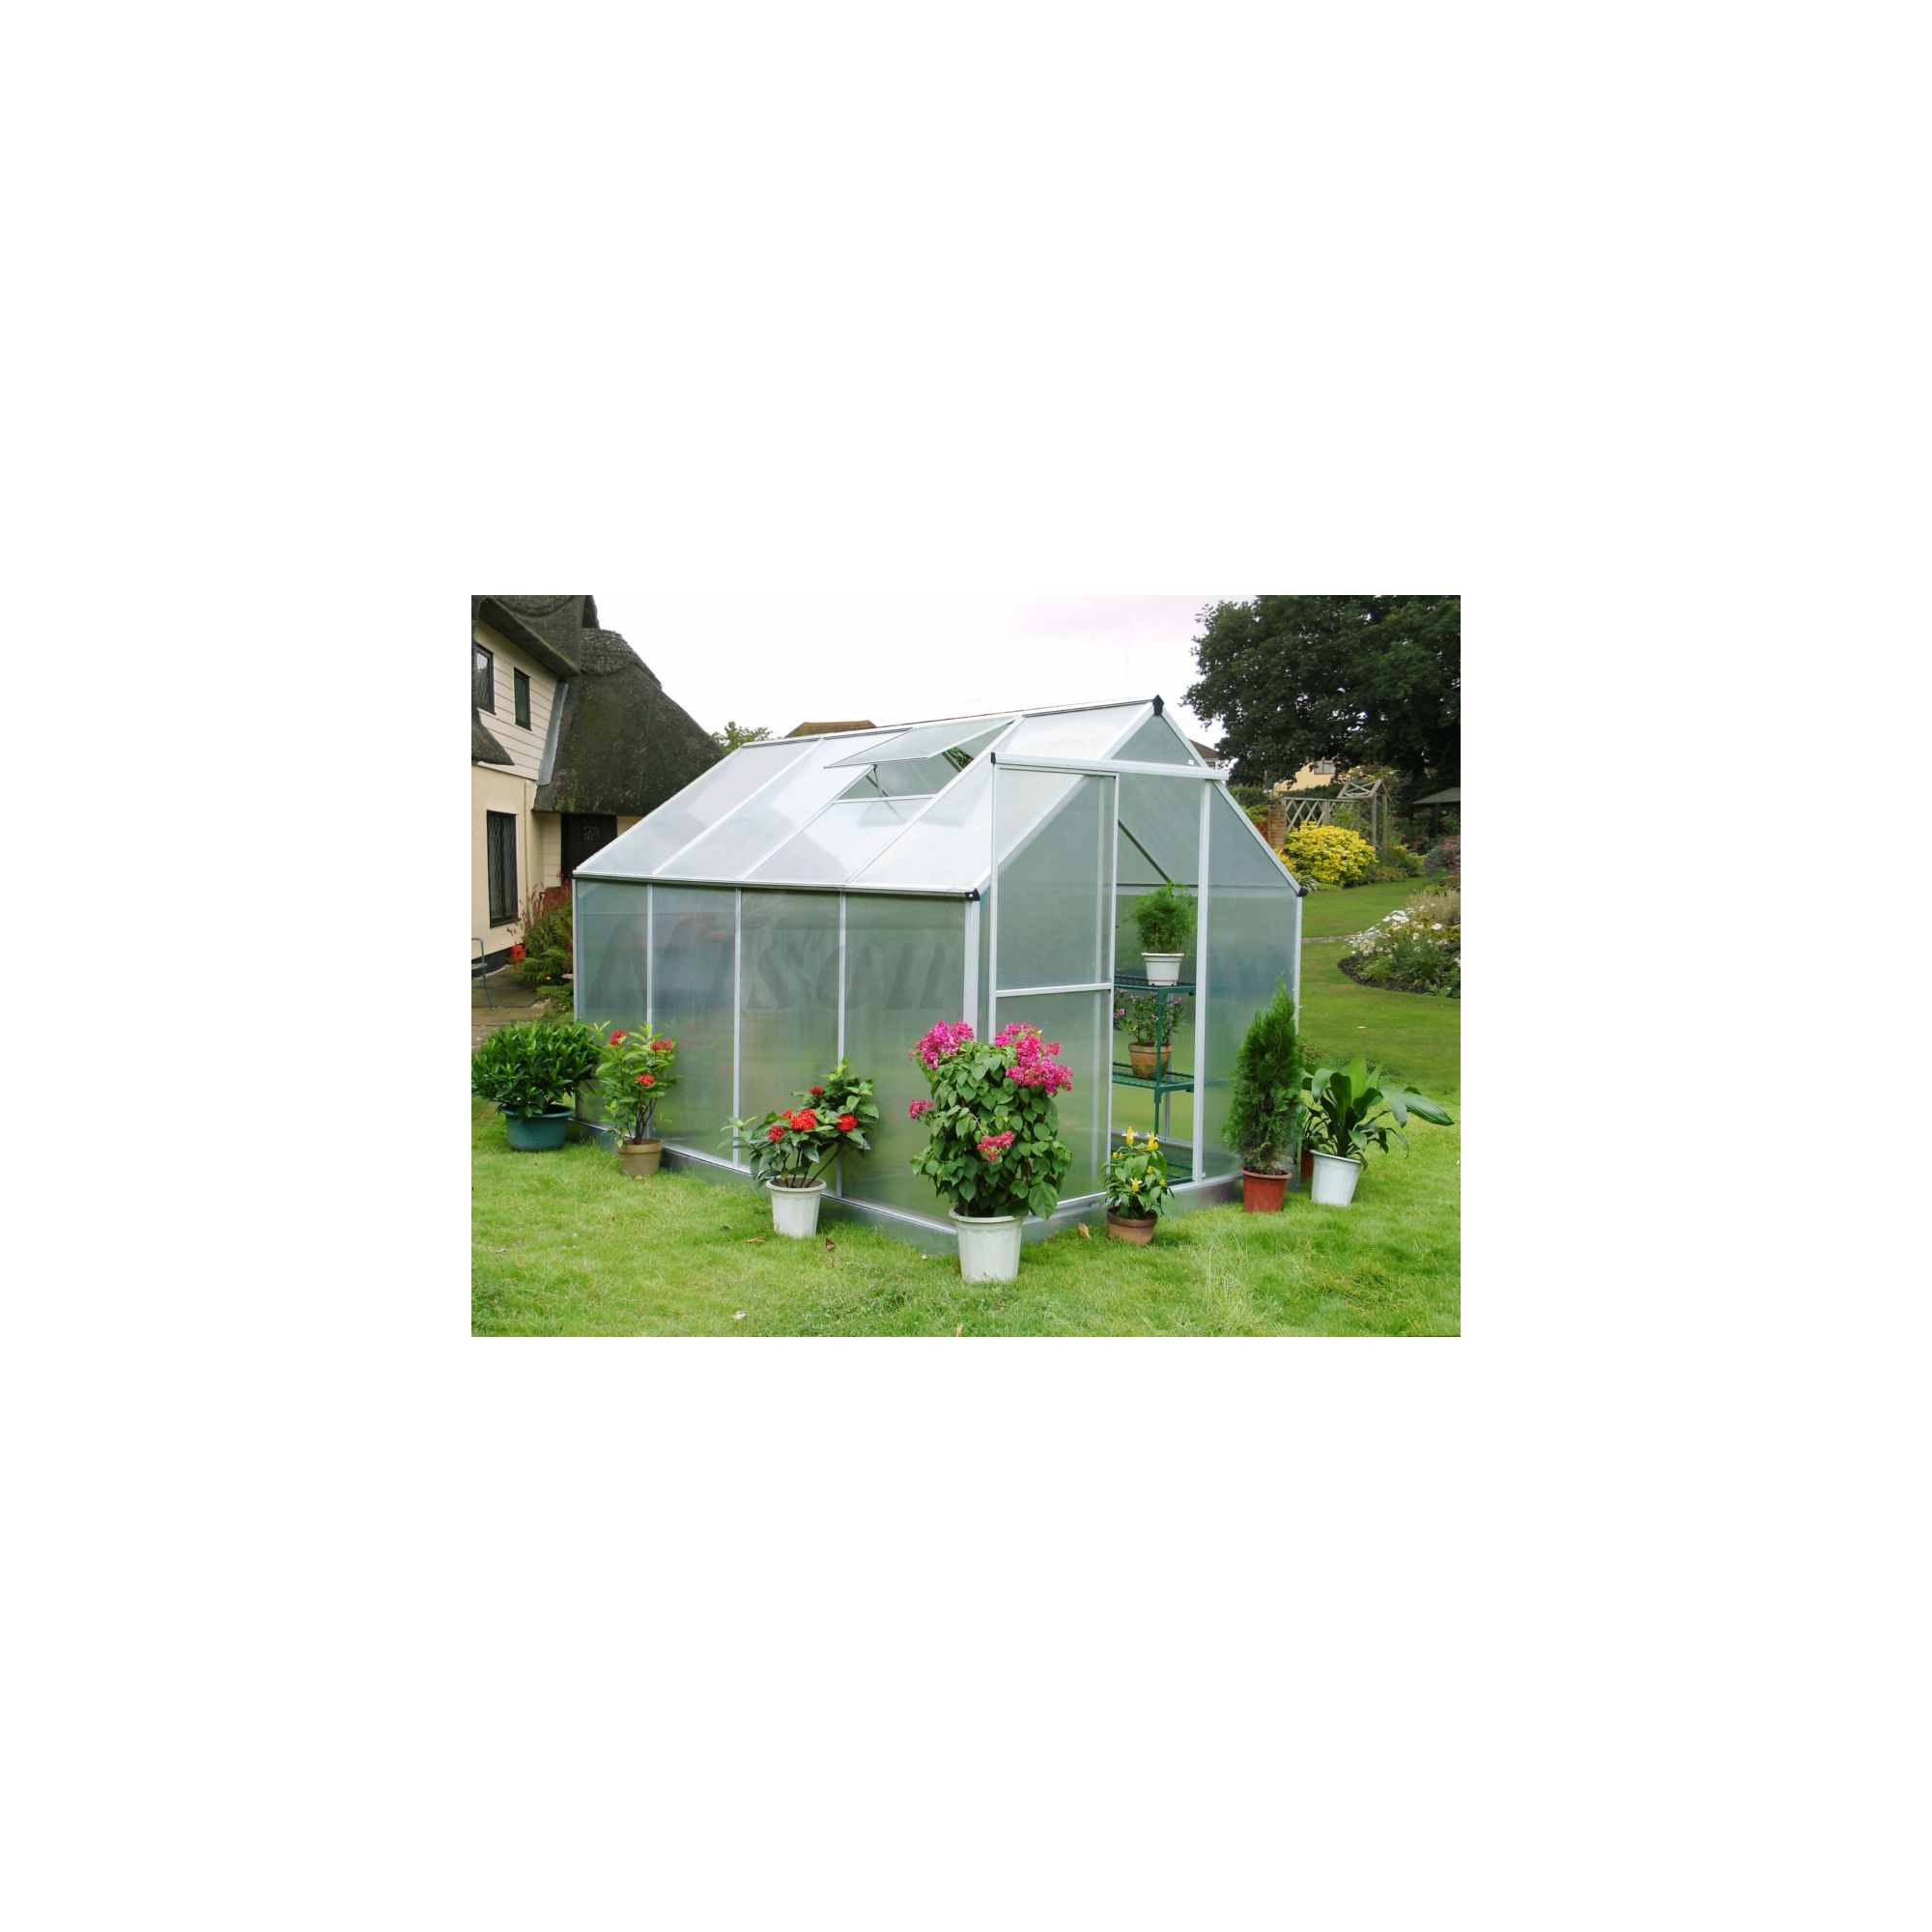 Nison Aquila 8x6 Aluminium Polycarbonate Greenhouse, Including Base & Free Shelving at Tesco Direct